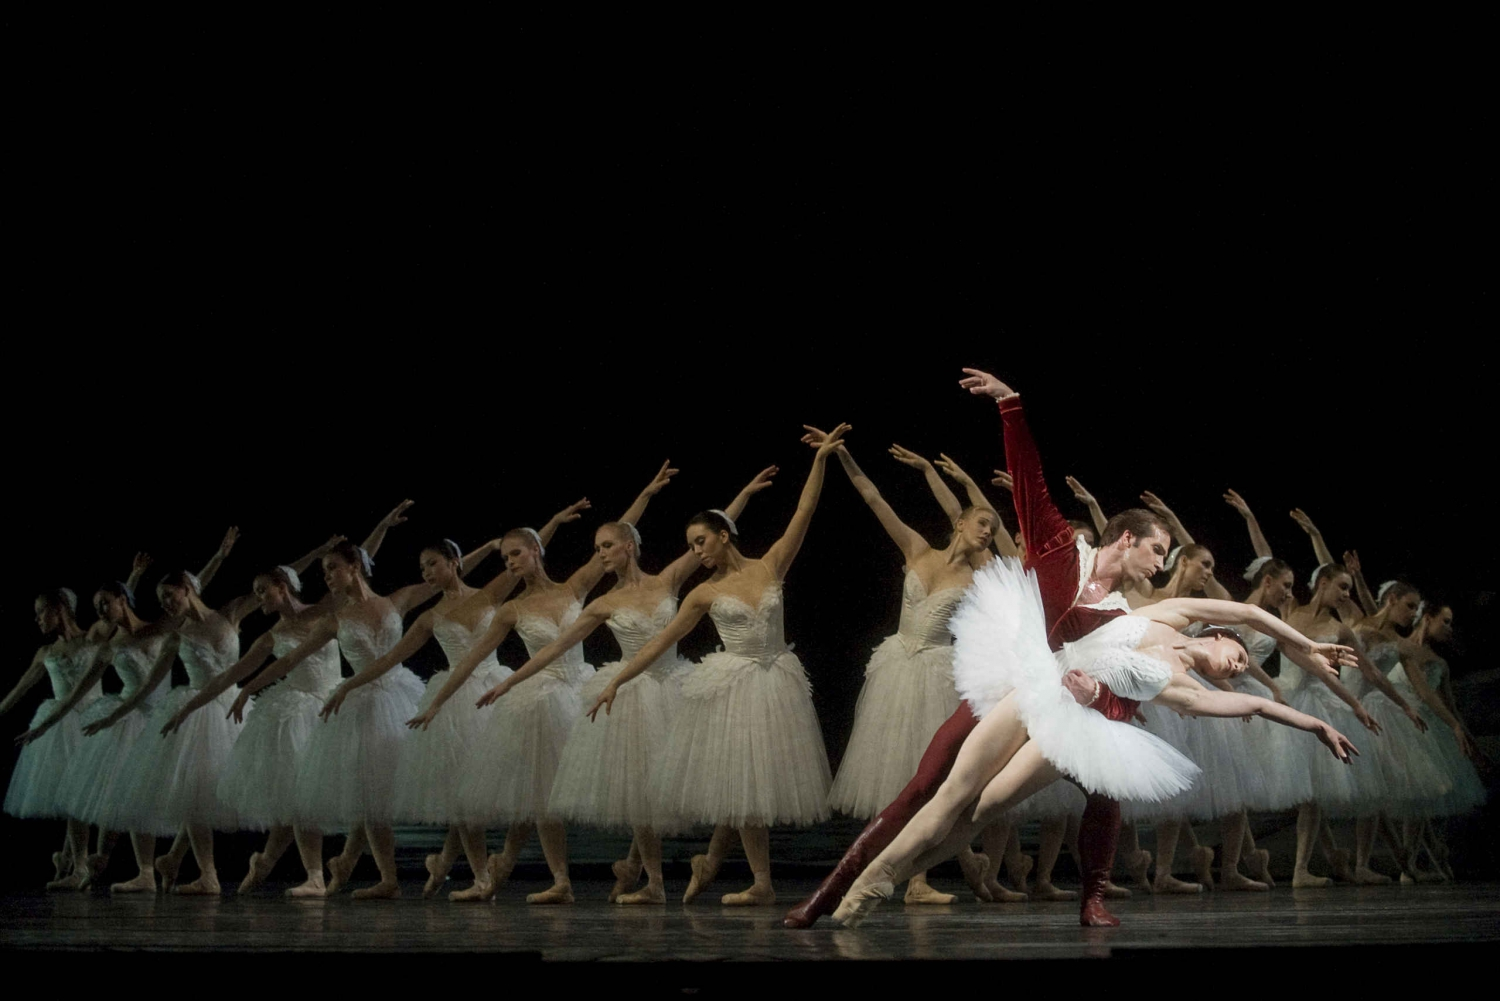 St. Petersburg: Swan Lake Ballet at the Hermitage Theatre